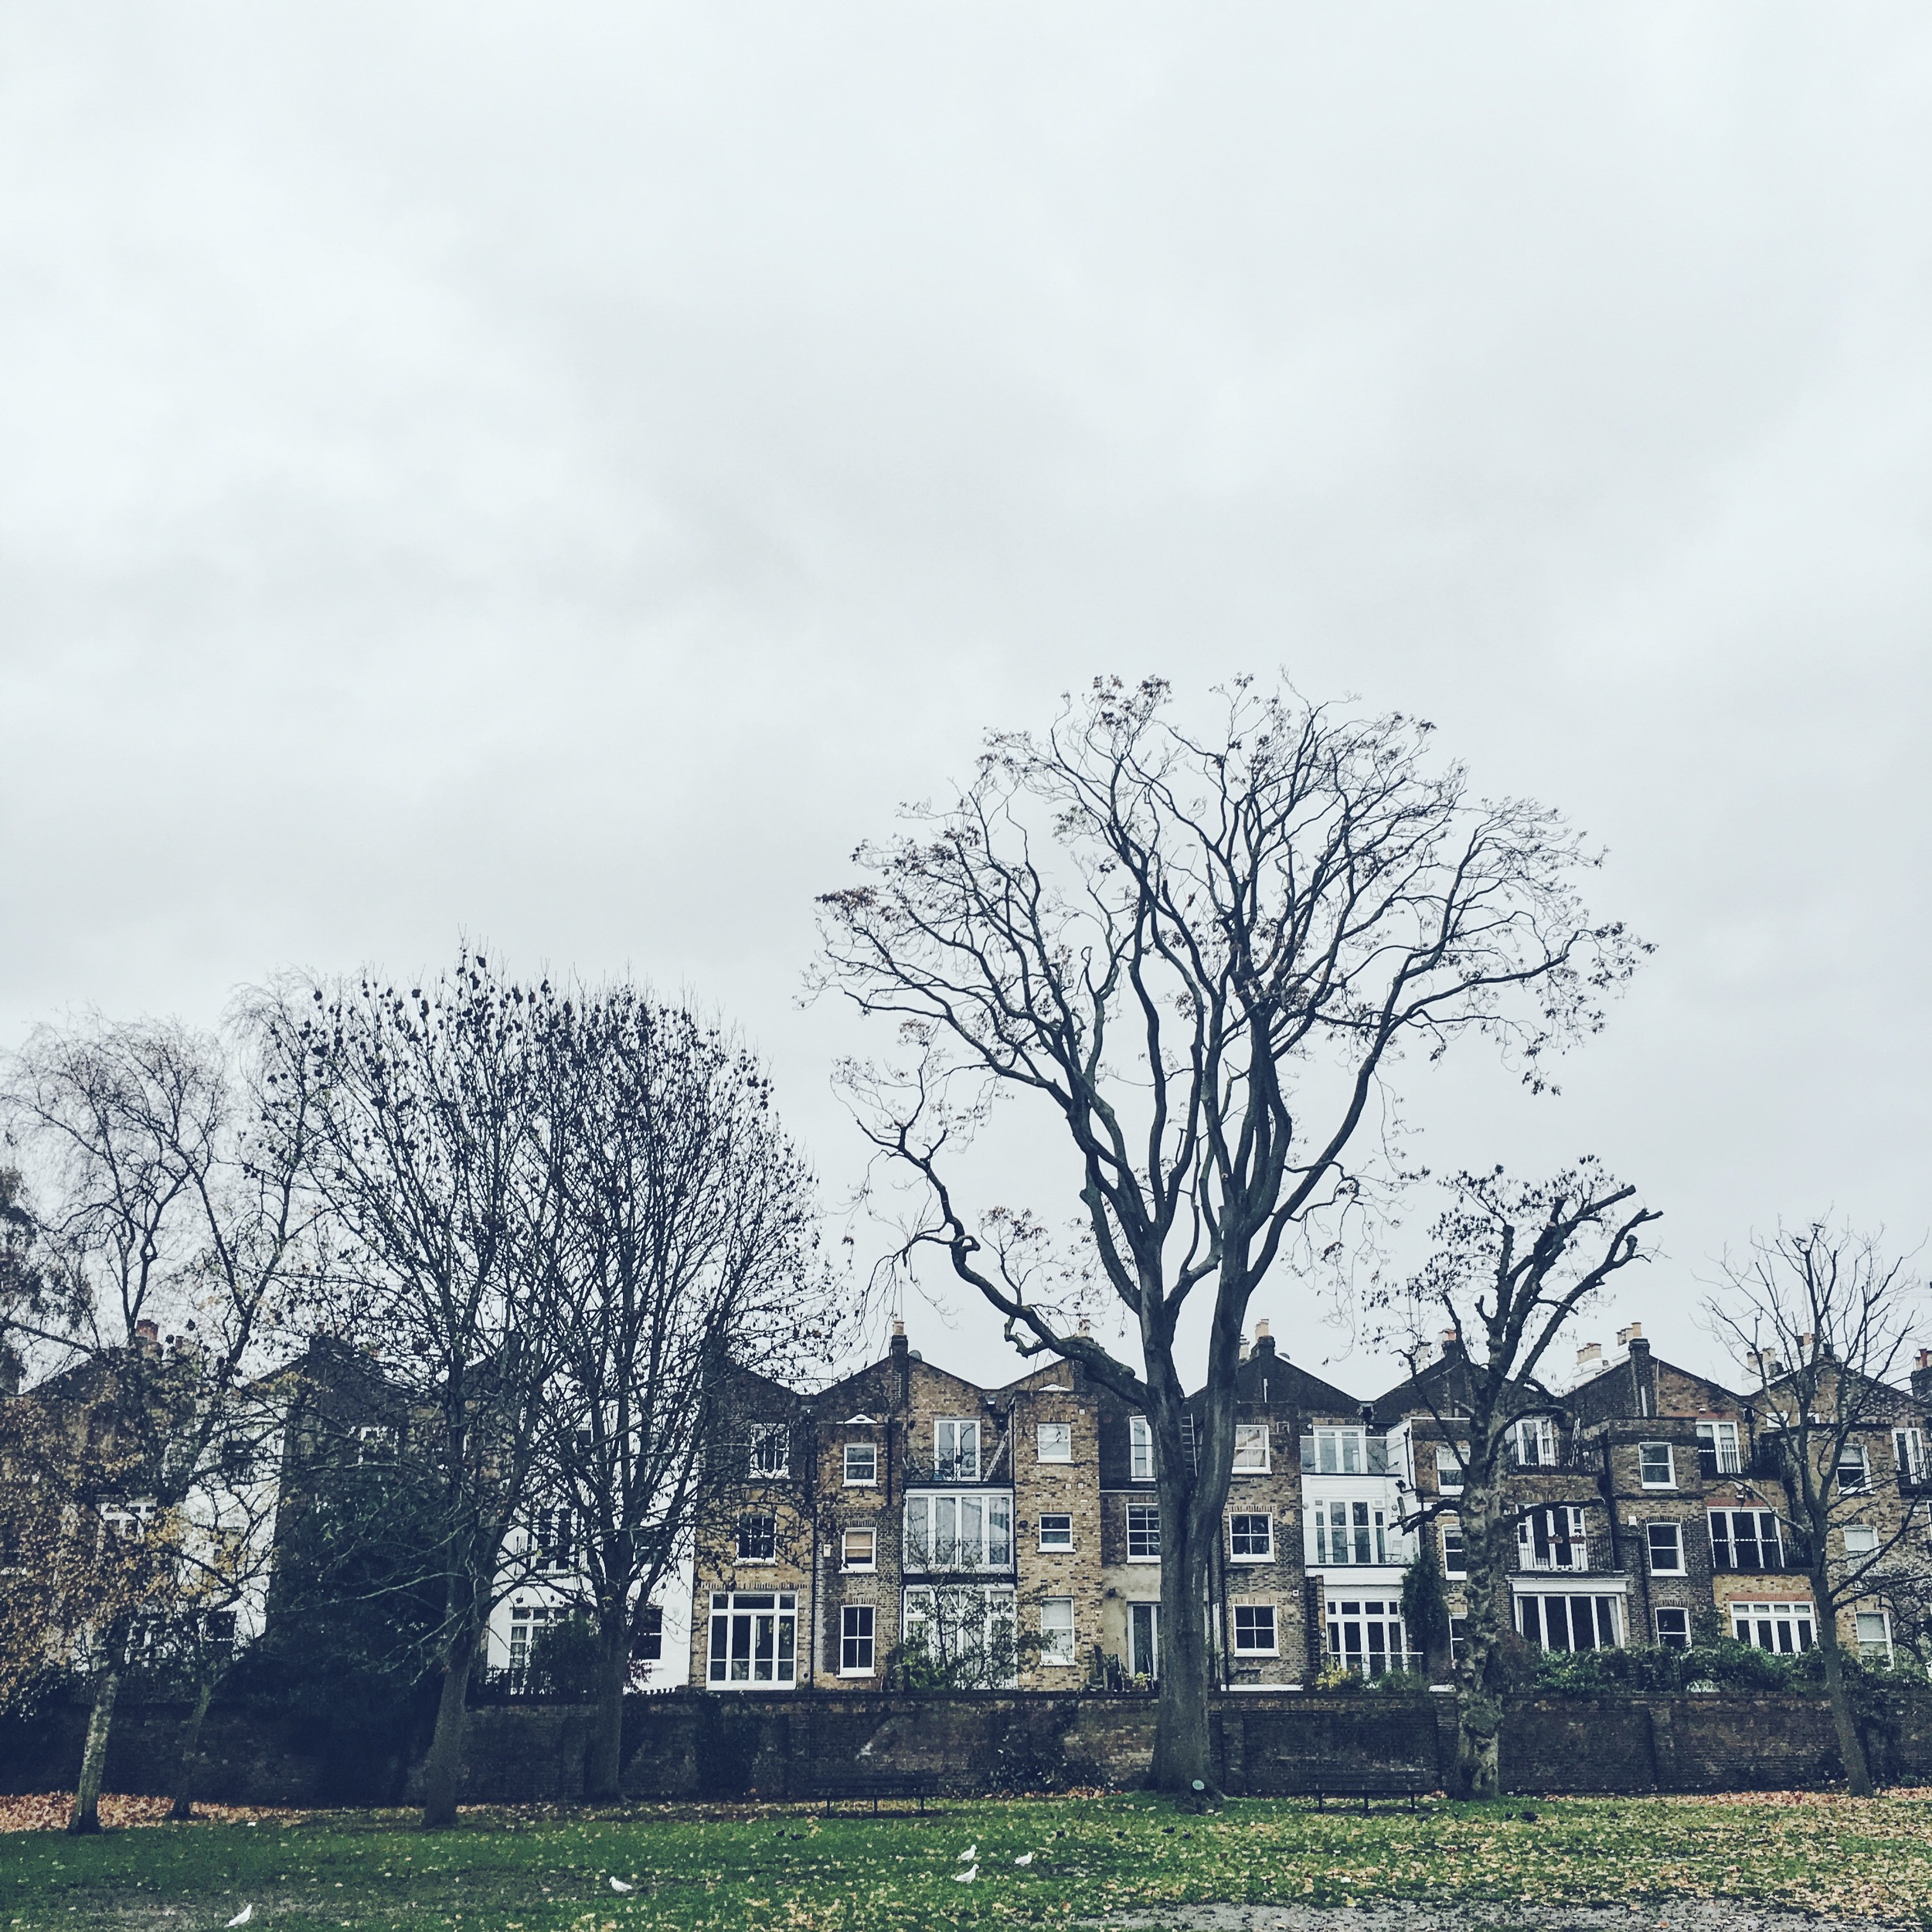 Hammersmith homes overlooking the wintery park.